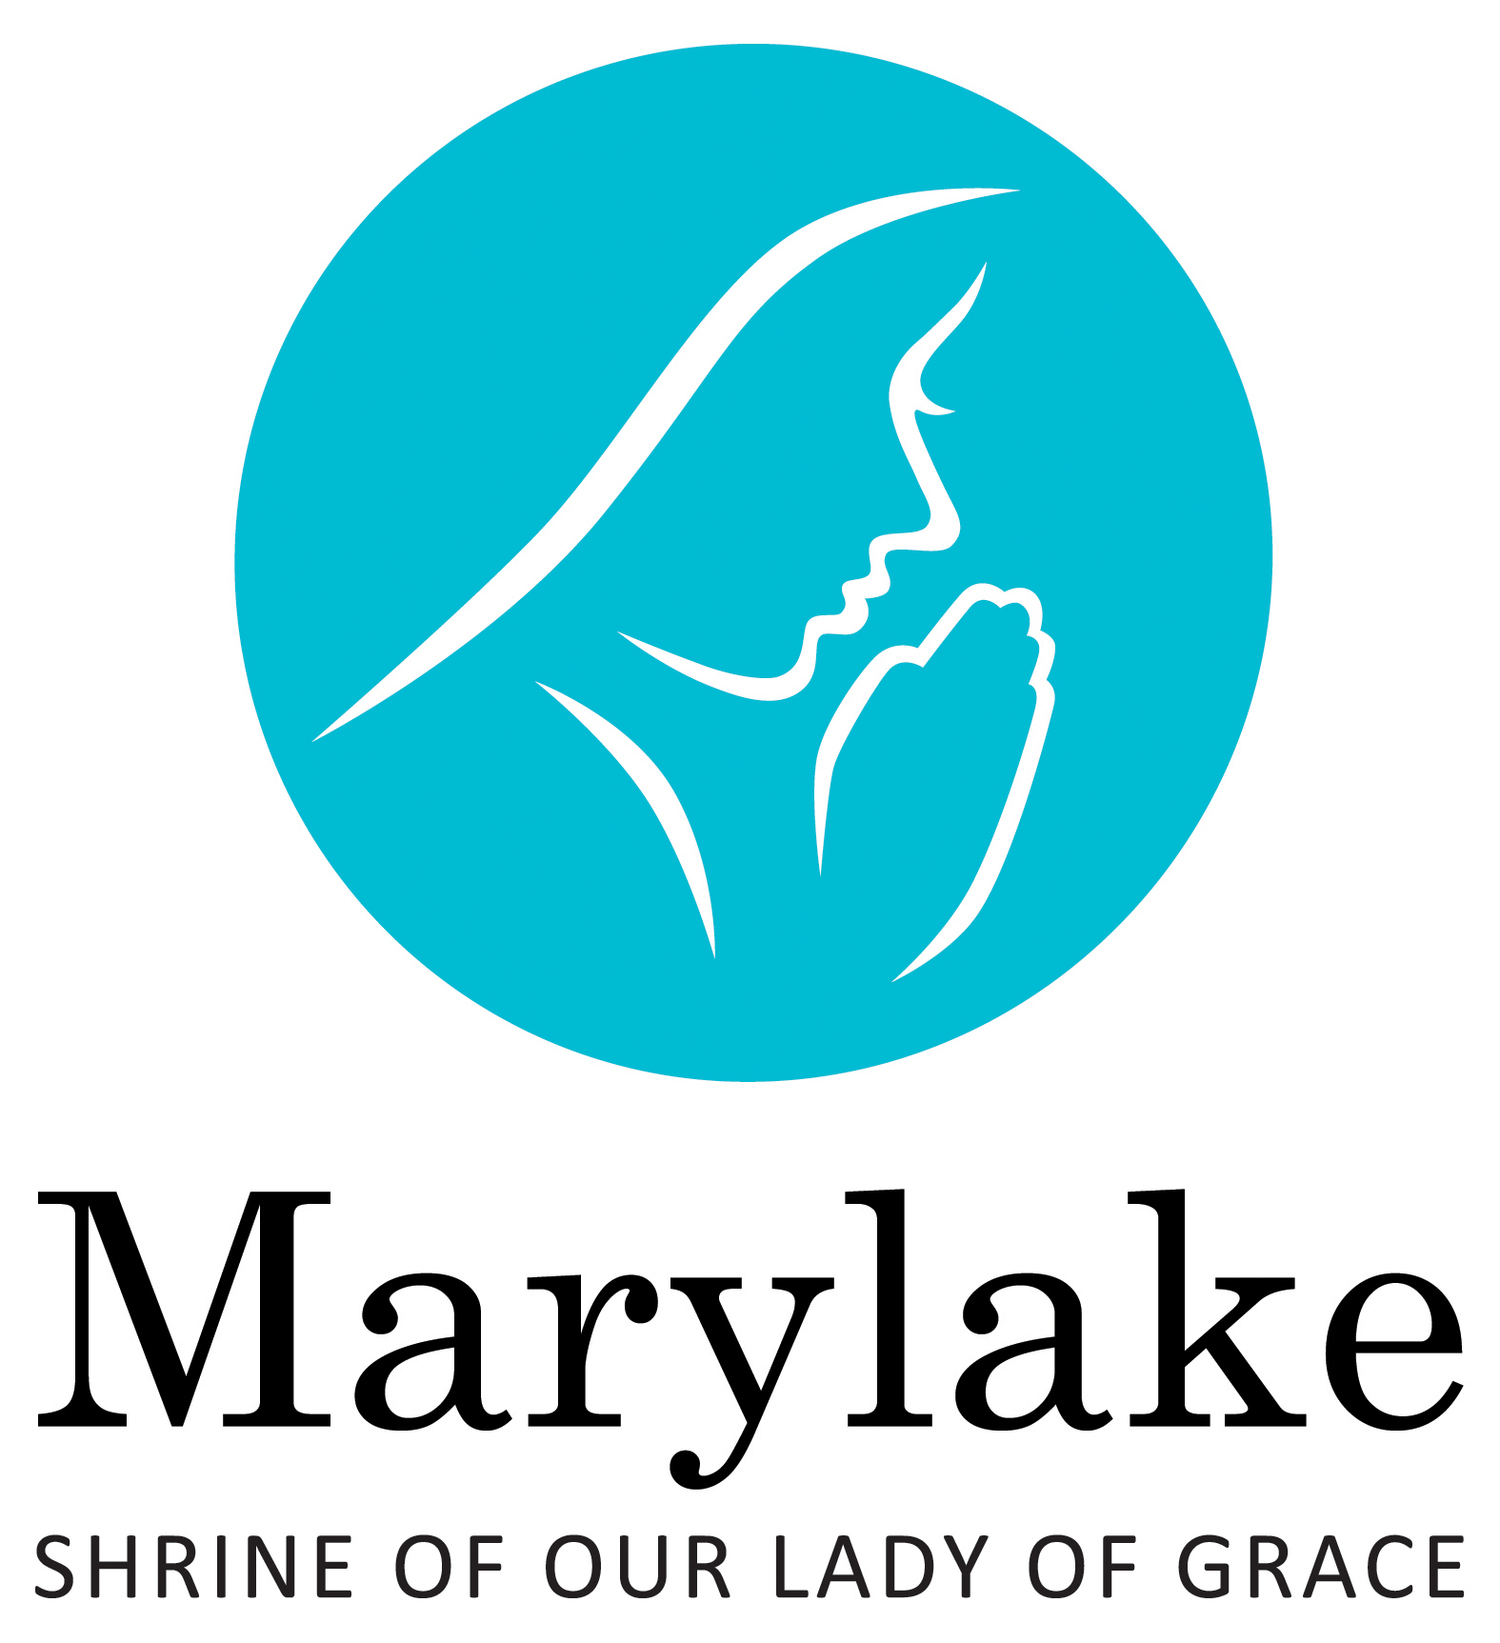 Marylake Shrine of Our Lady of Grace